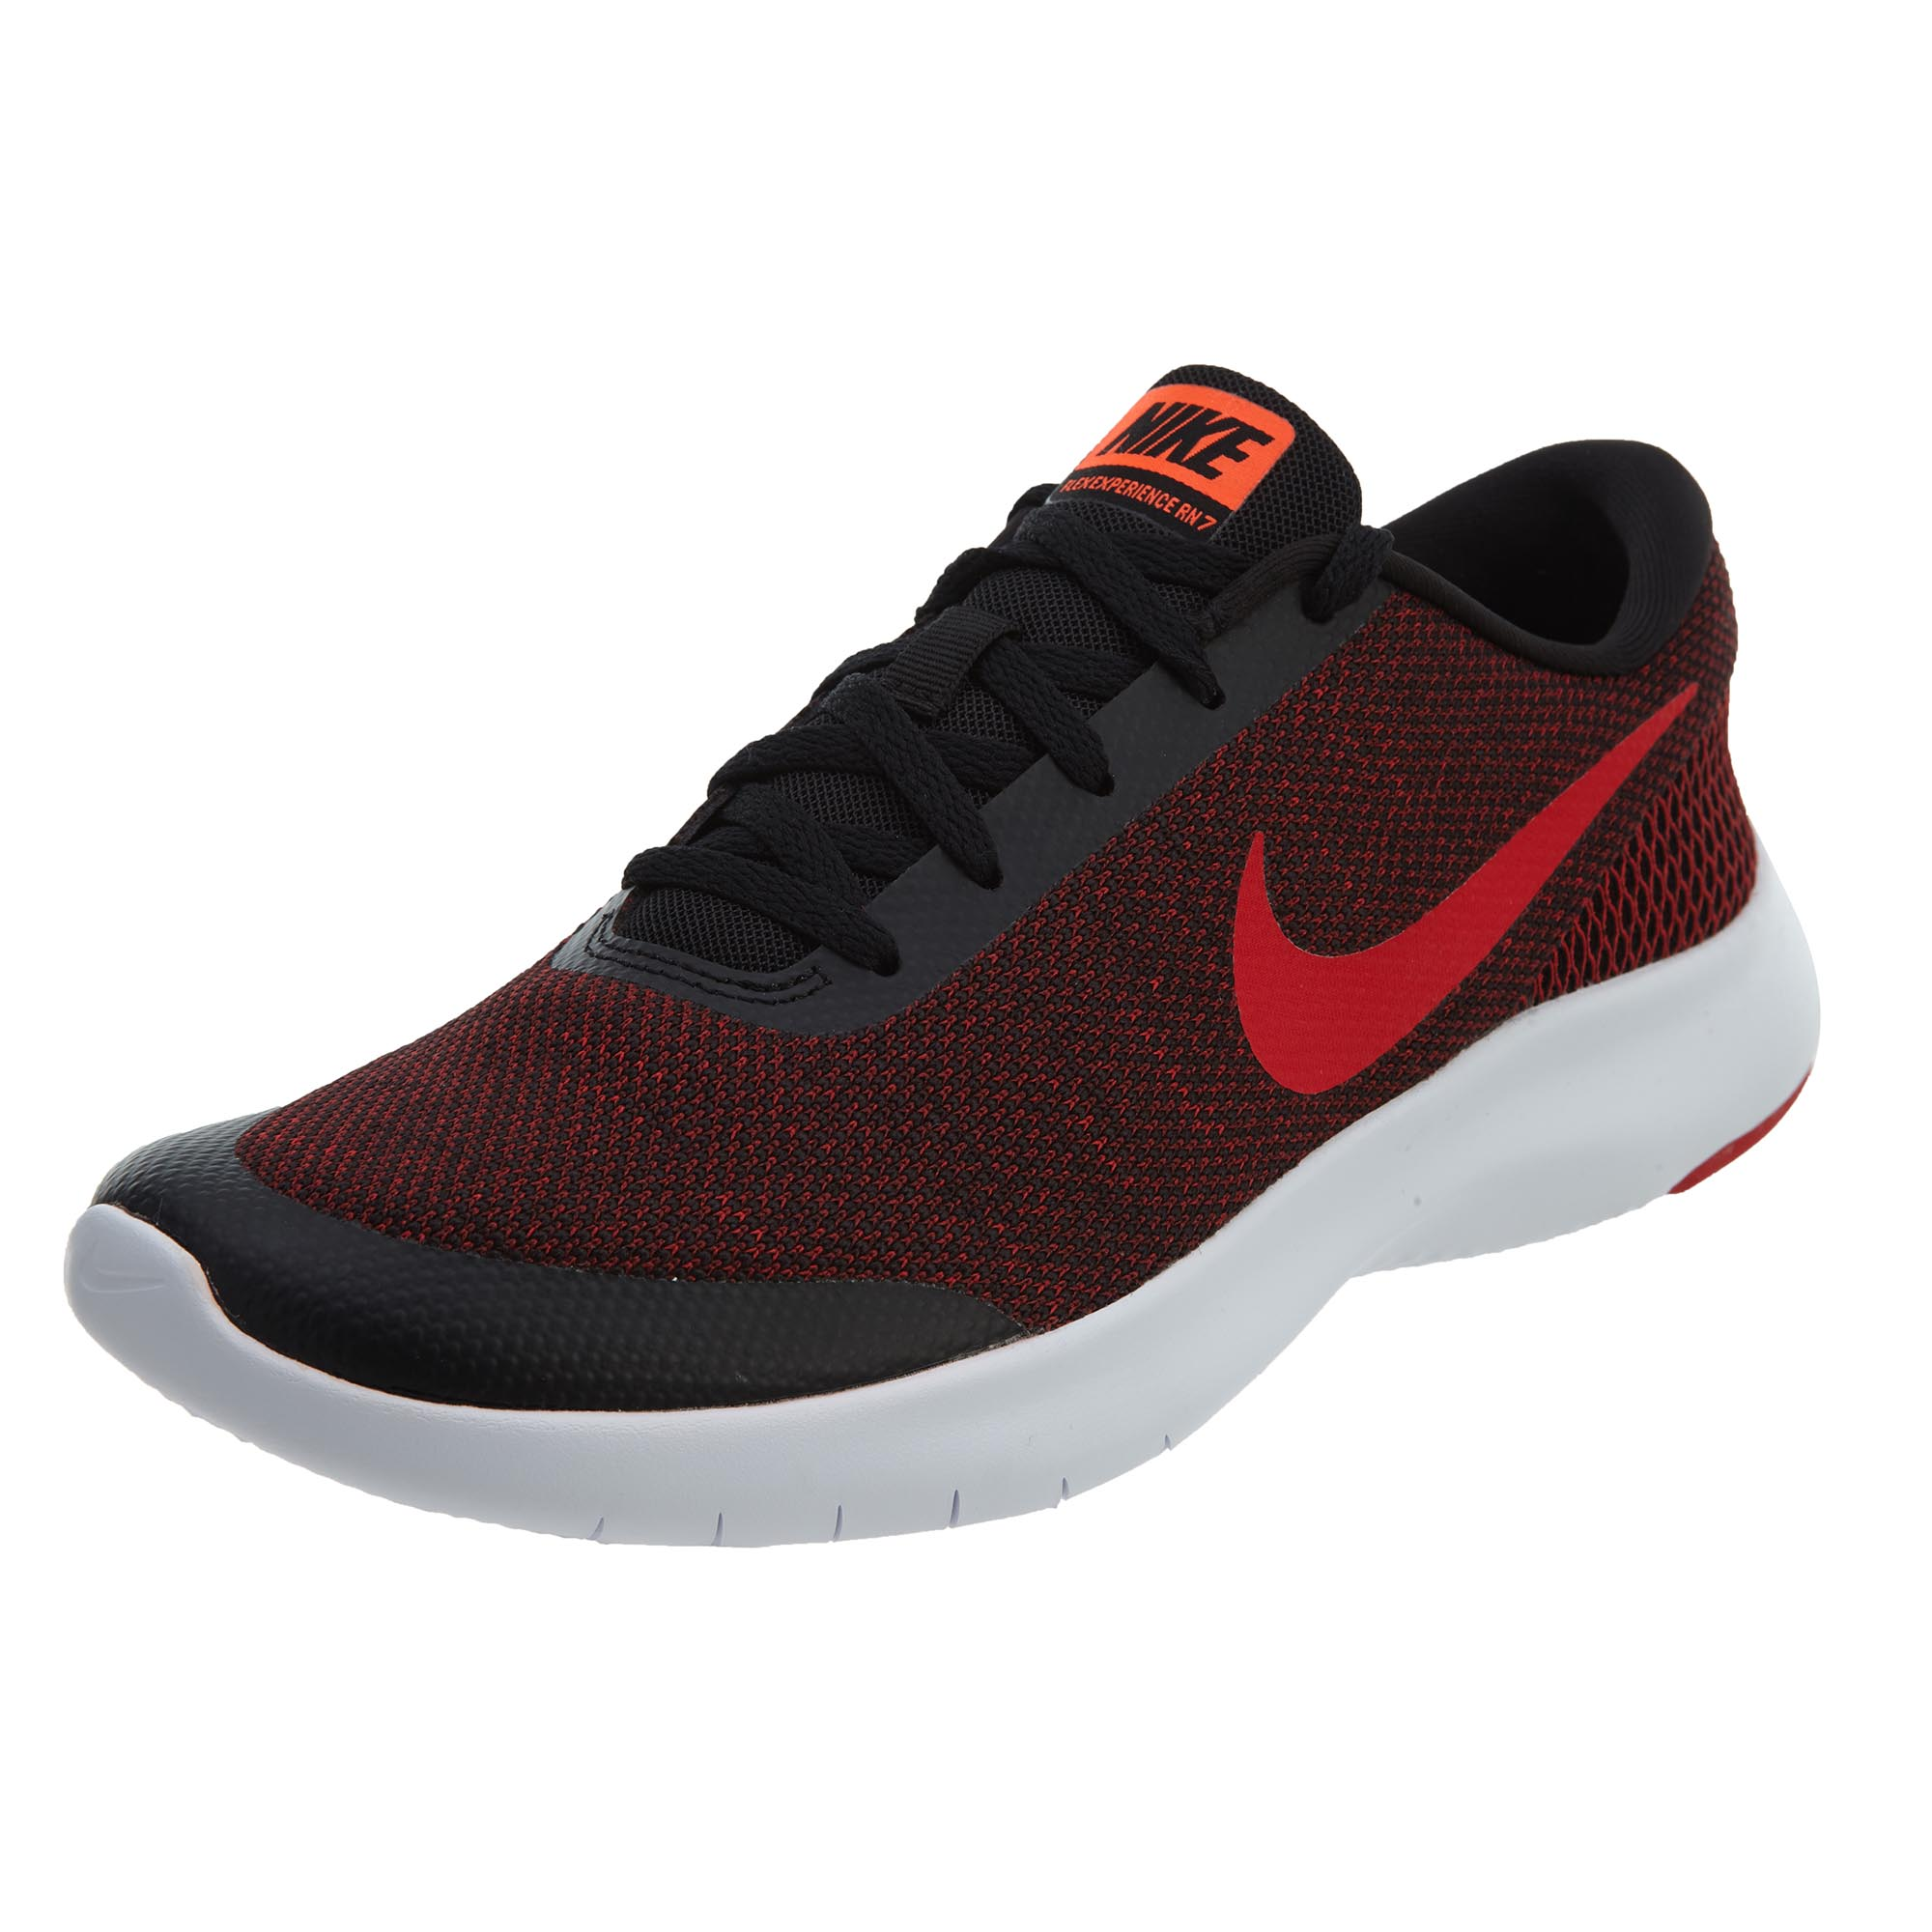 49dce636c0e44 Details about Nike Mens Flex Experience RN 7 Running Shoes 908985-006